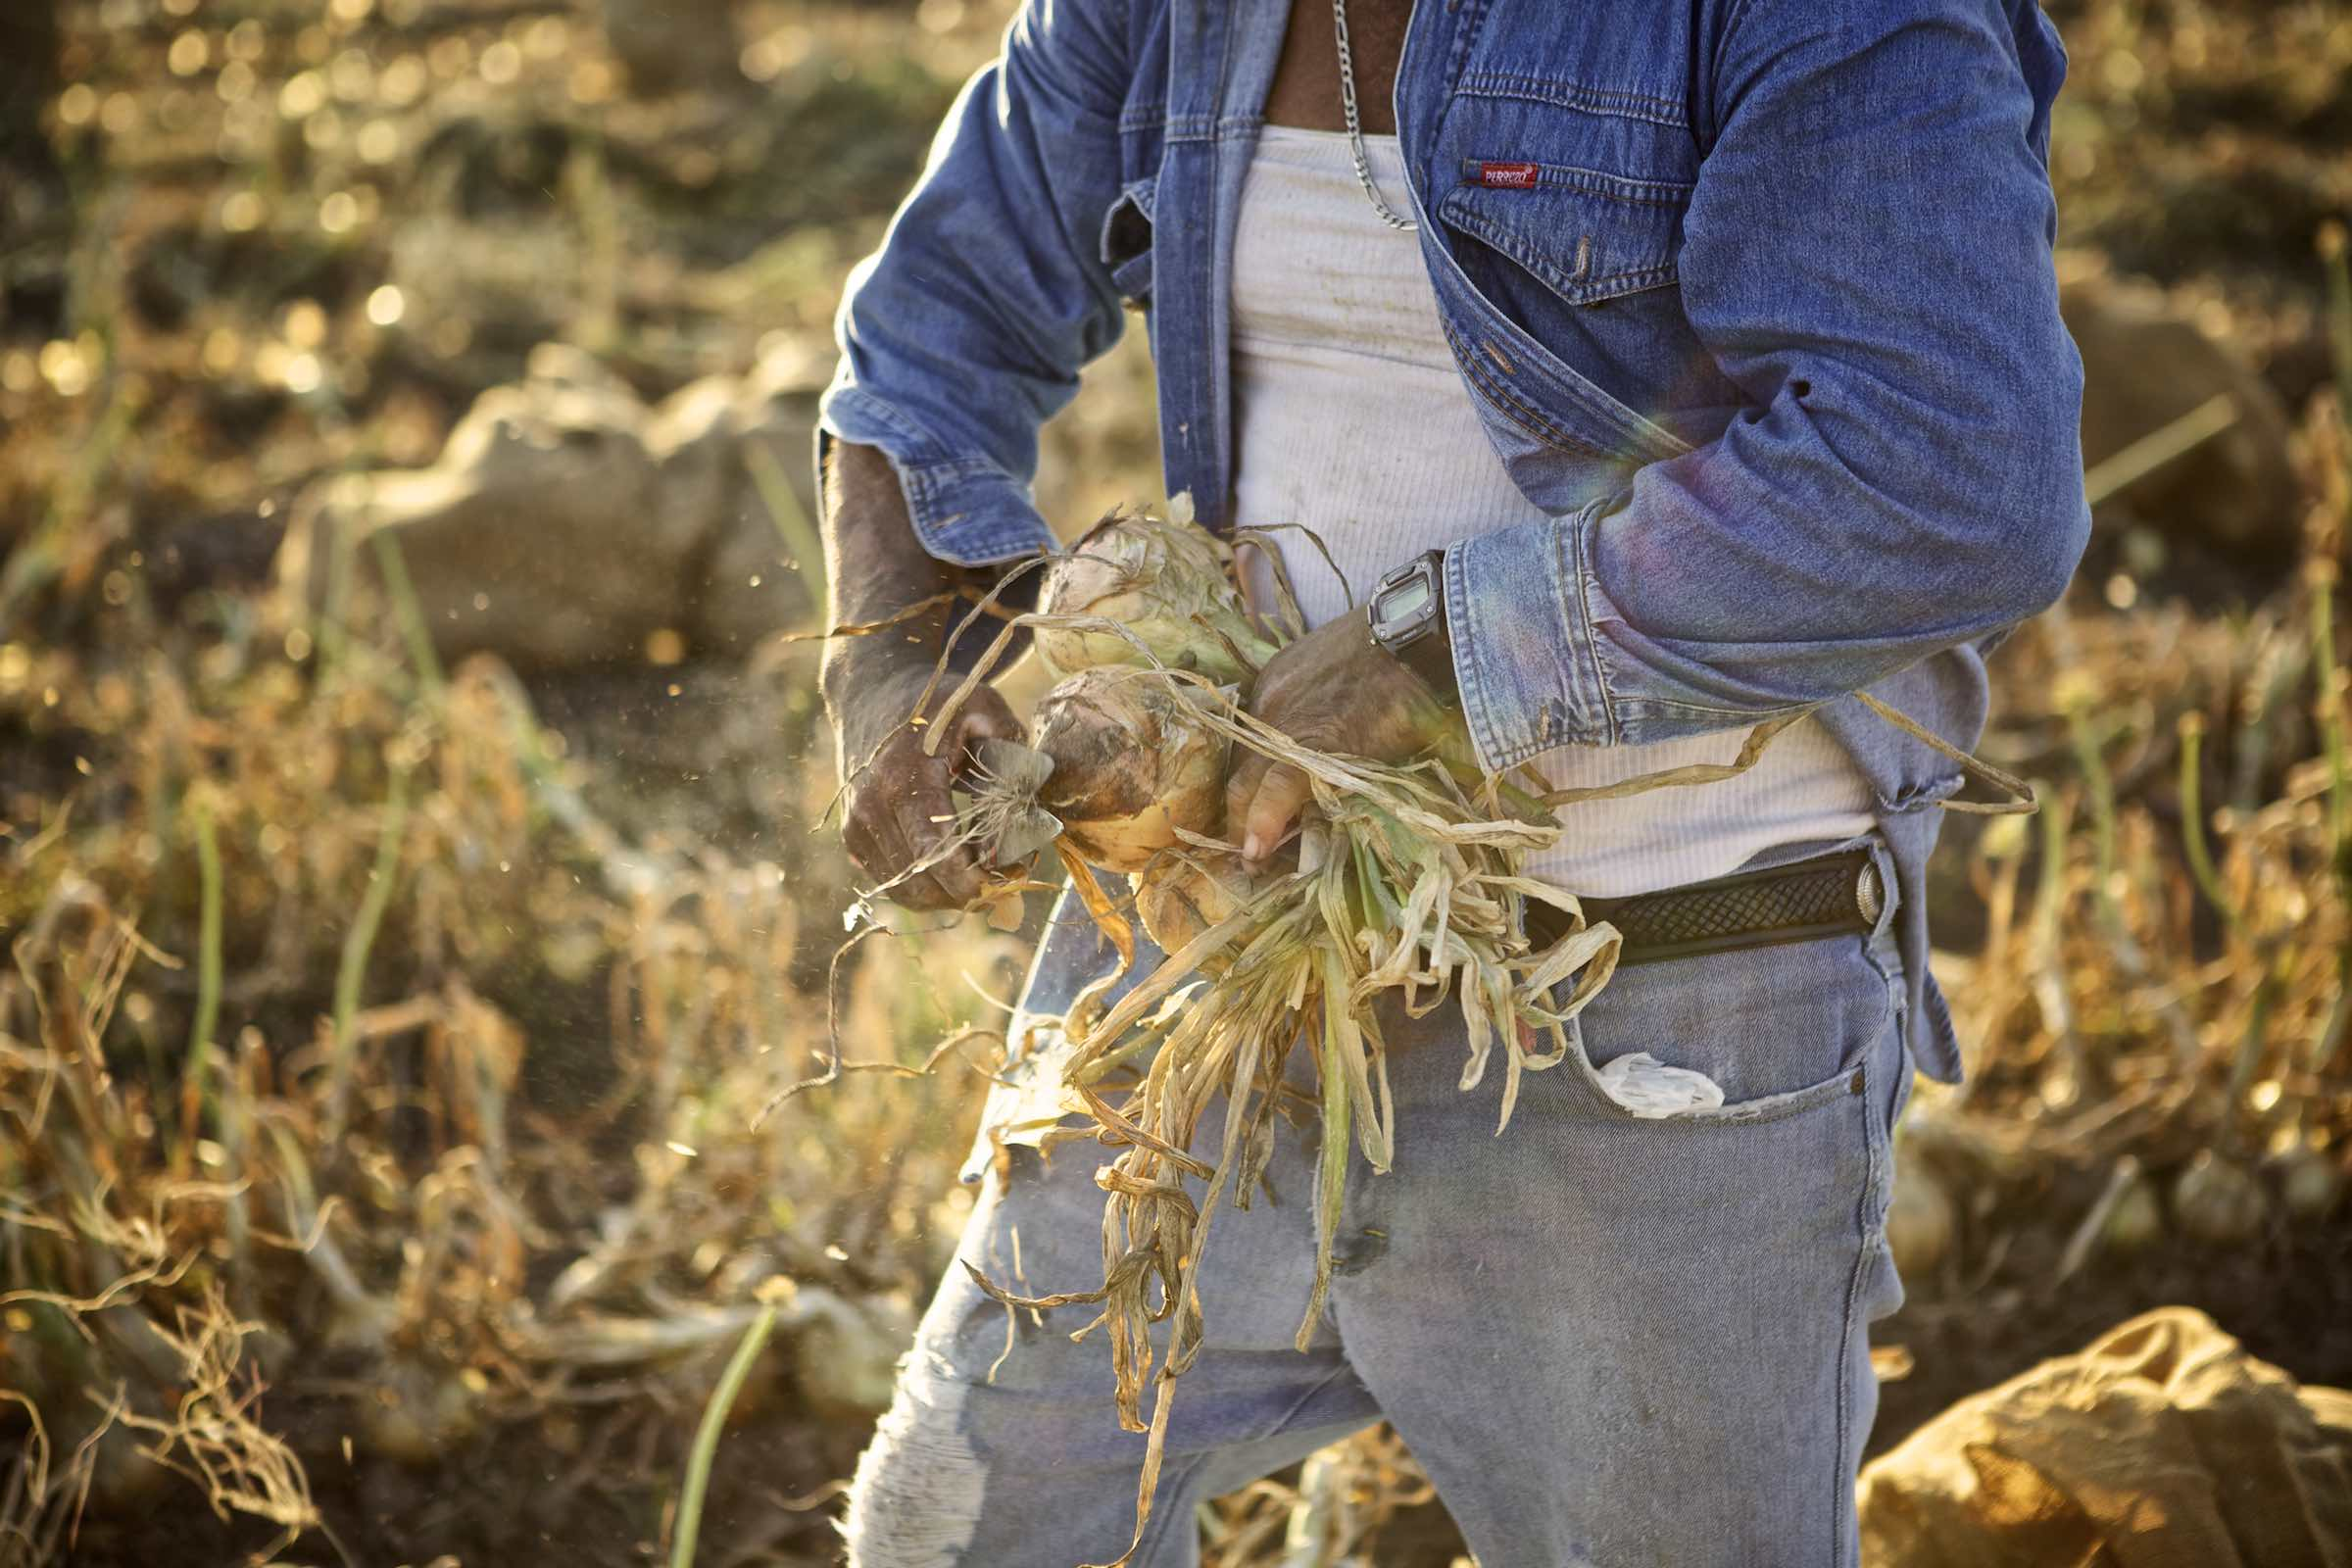 onion_harvest_photography8